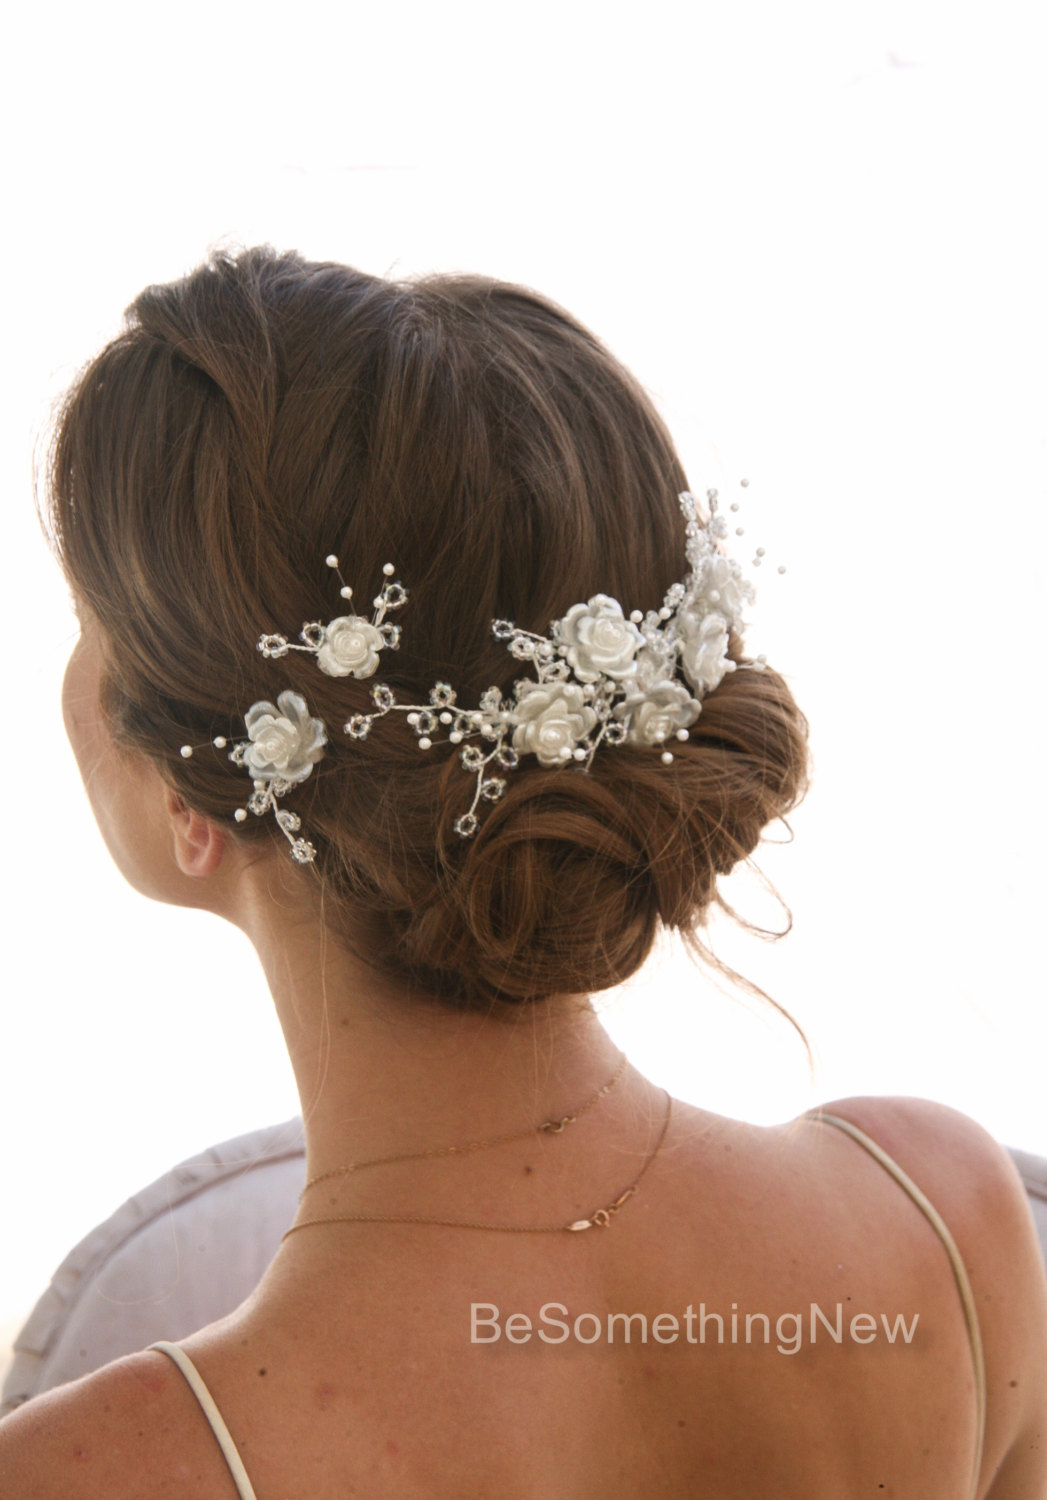 The Khaleeji Flower Hair Clip is loosely referred to as Gamboo3a or Shabasa,+ followers on Twitter.